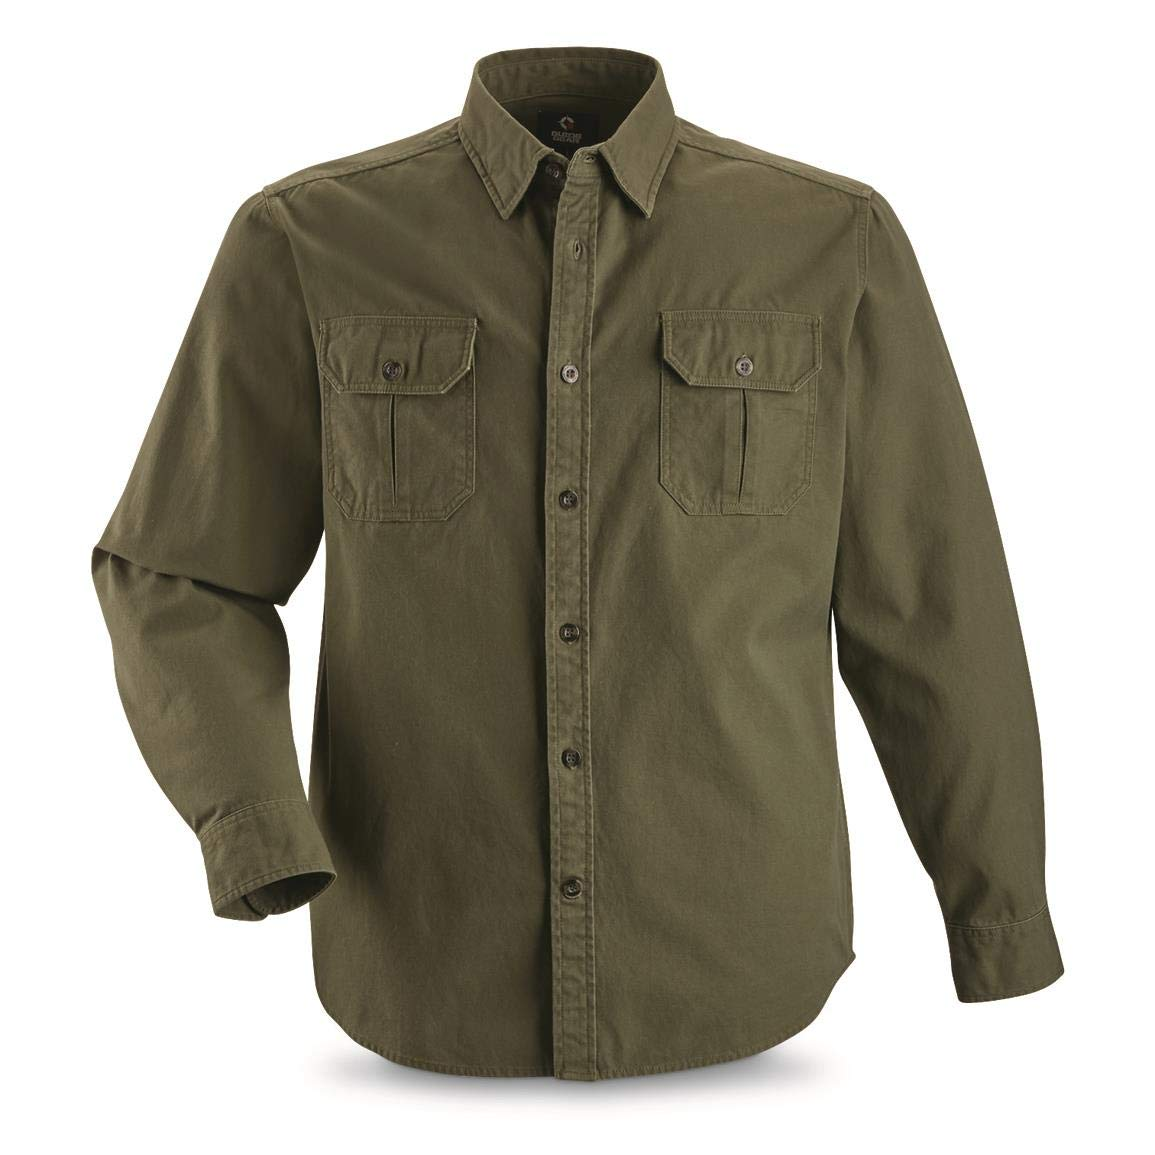 Guide Gear Men's Long-Sleeve Canvas Shirt, Olive, 2XL